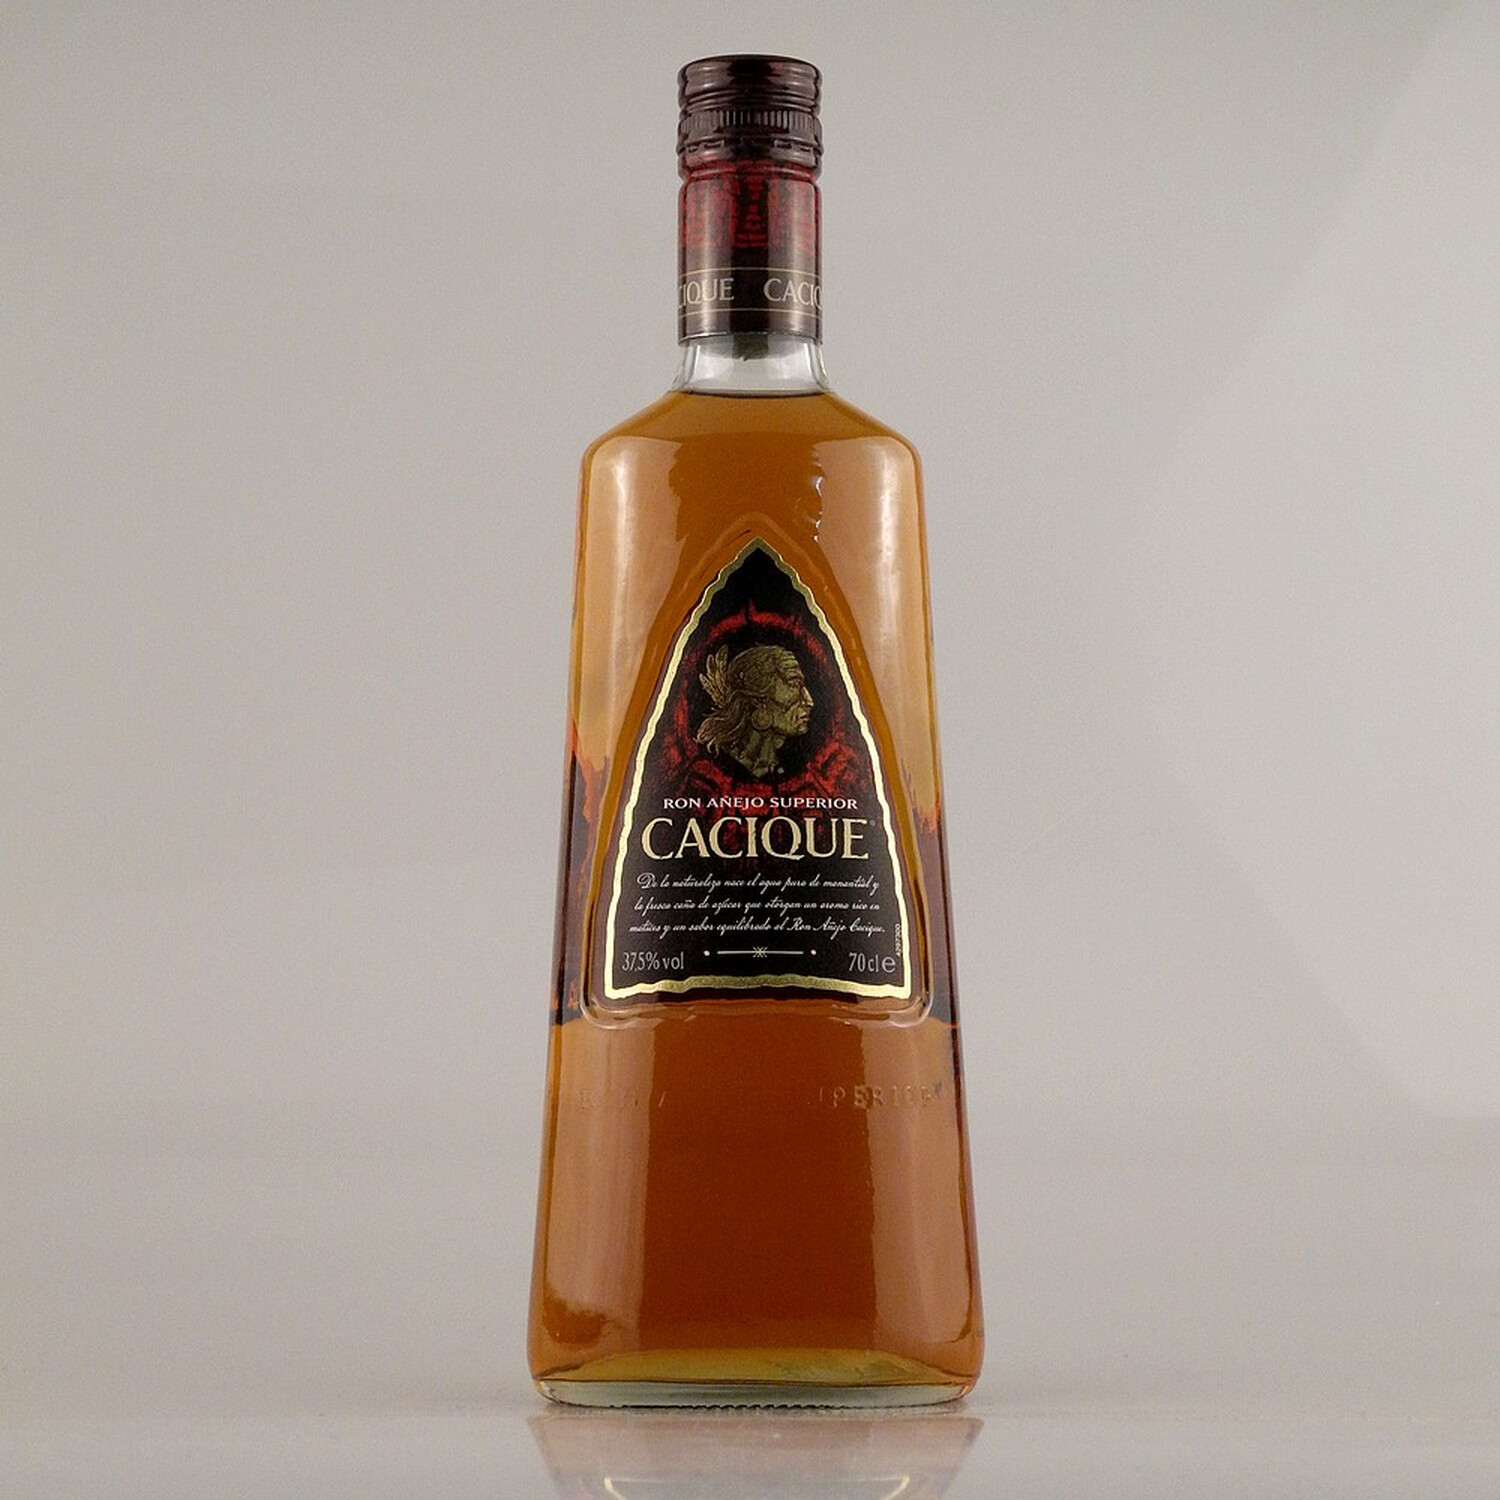 Cacique Ron Anejo Superior 37,5% 0,7l